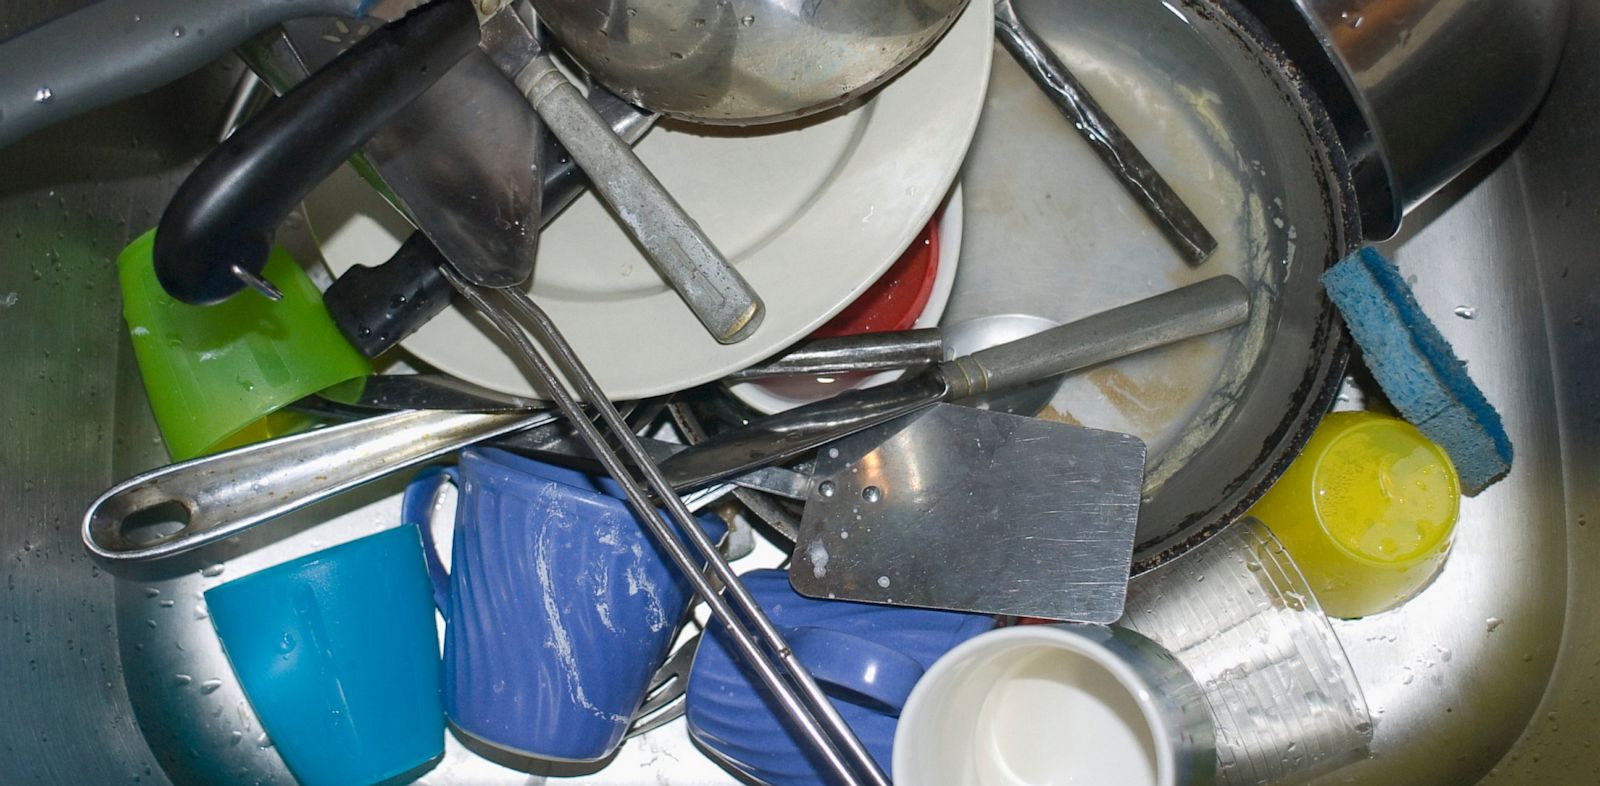 PHOTO: Dirty dishes fill the sink.